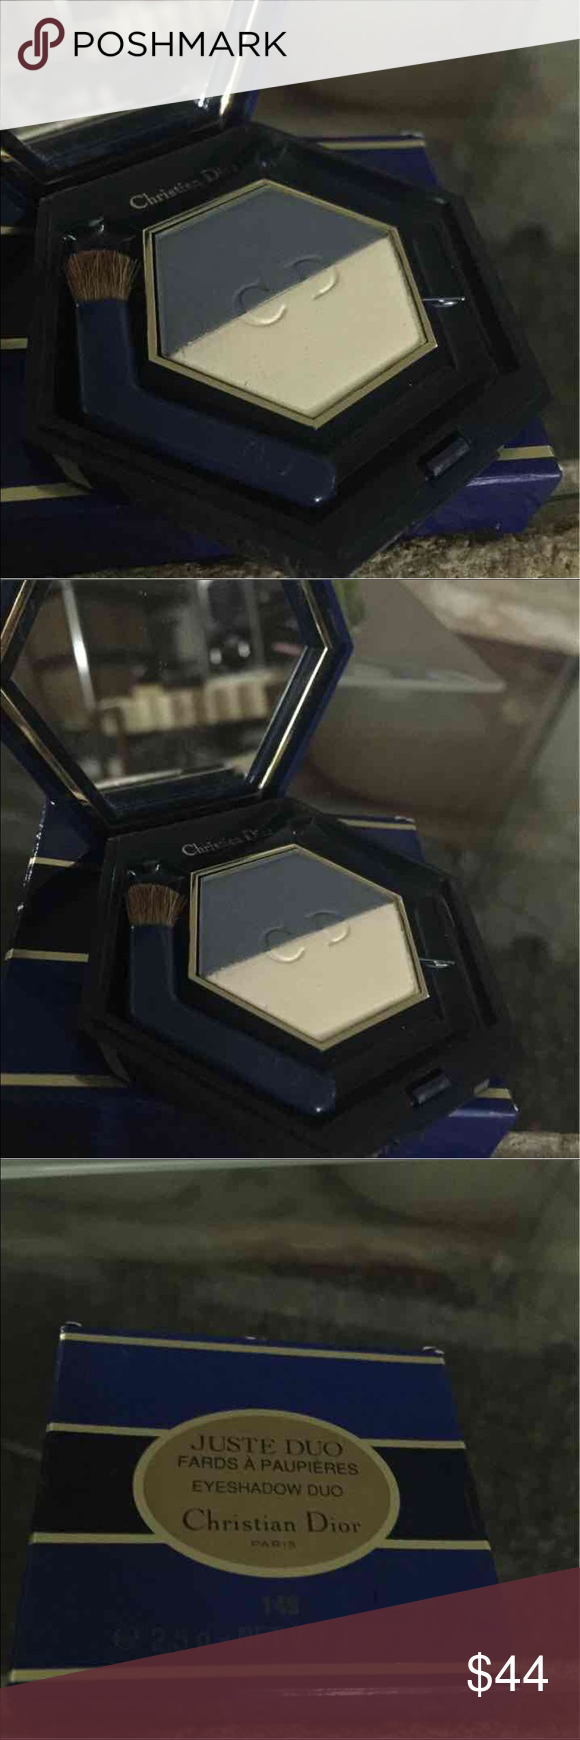 authentic Christian Dior Eyeshadow 149 Stardust. authentic Christian Dior Eyeshadow 149 Stardust. Made in Italy Christian Dior Makeup Eyeshadow